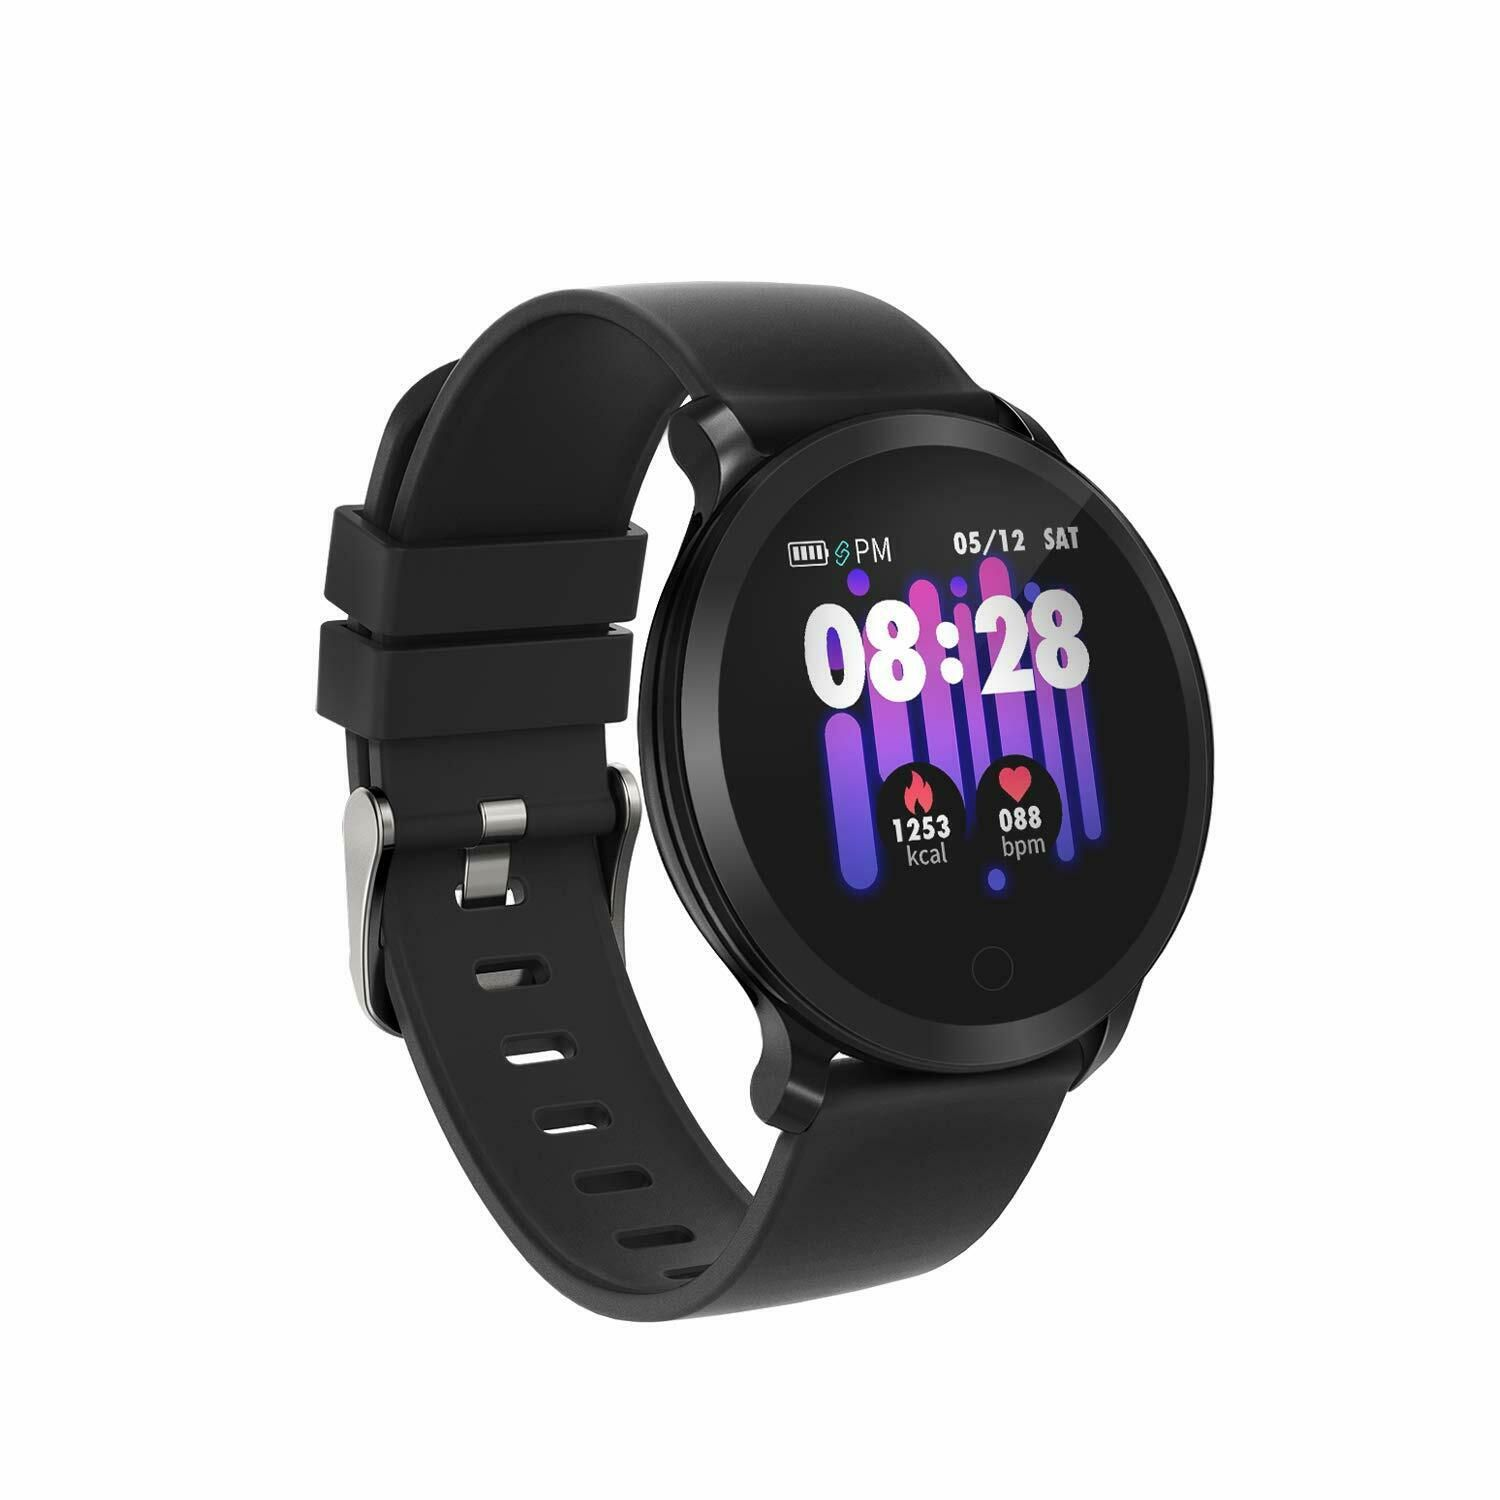 Smart Watch IP68 Waterproof Fitness Tracker Watch Color Screen with Heart Rate - Fitness Watch - Ide...